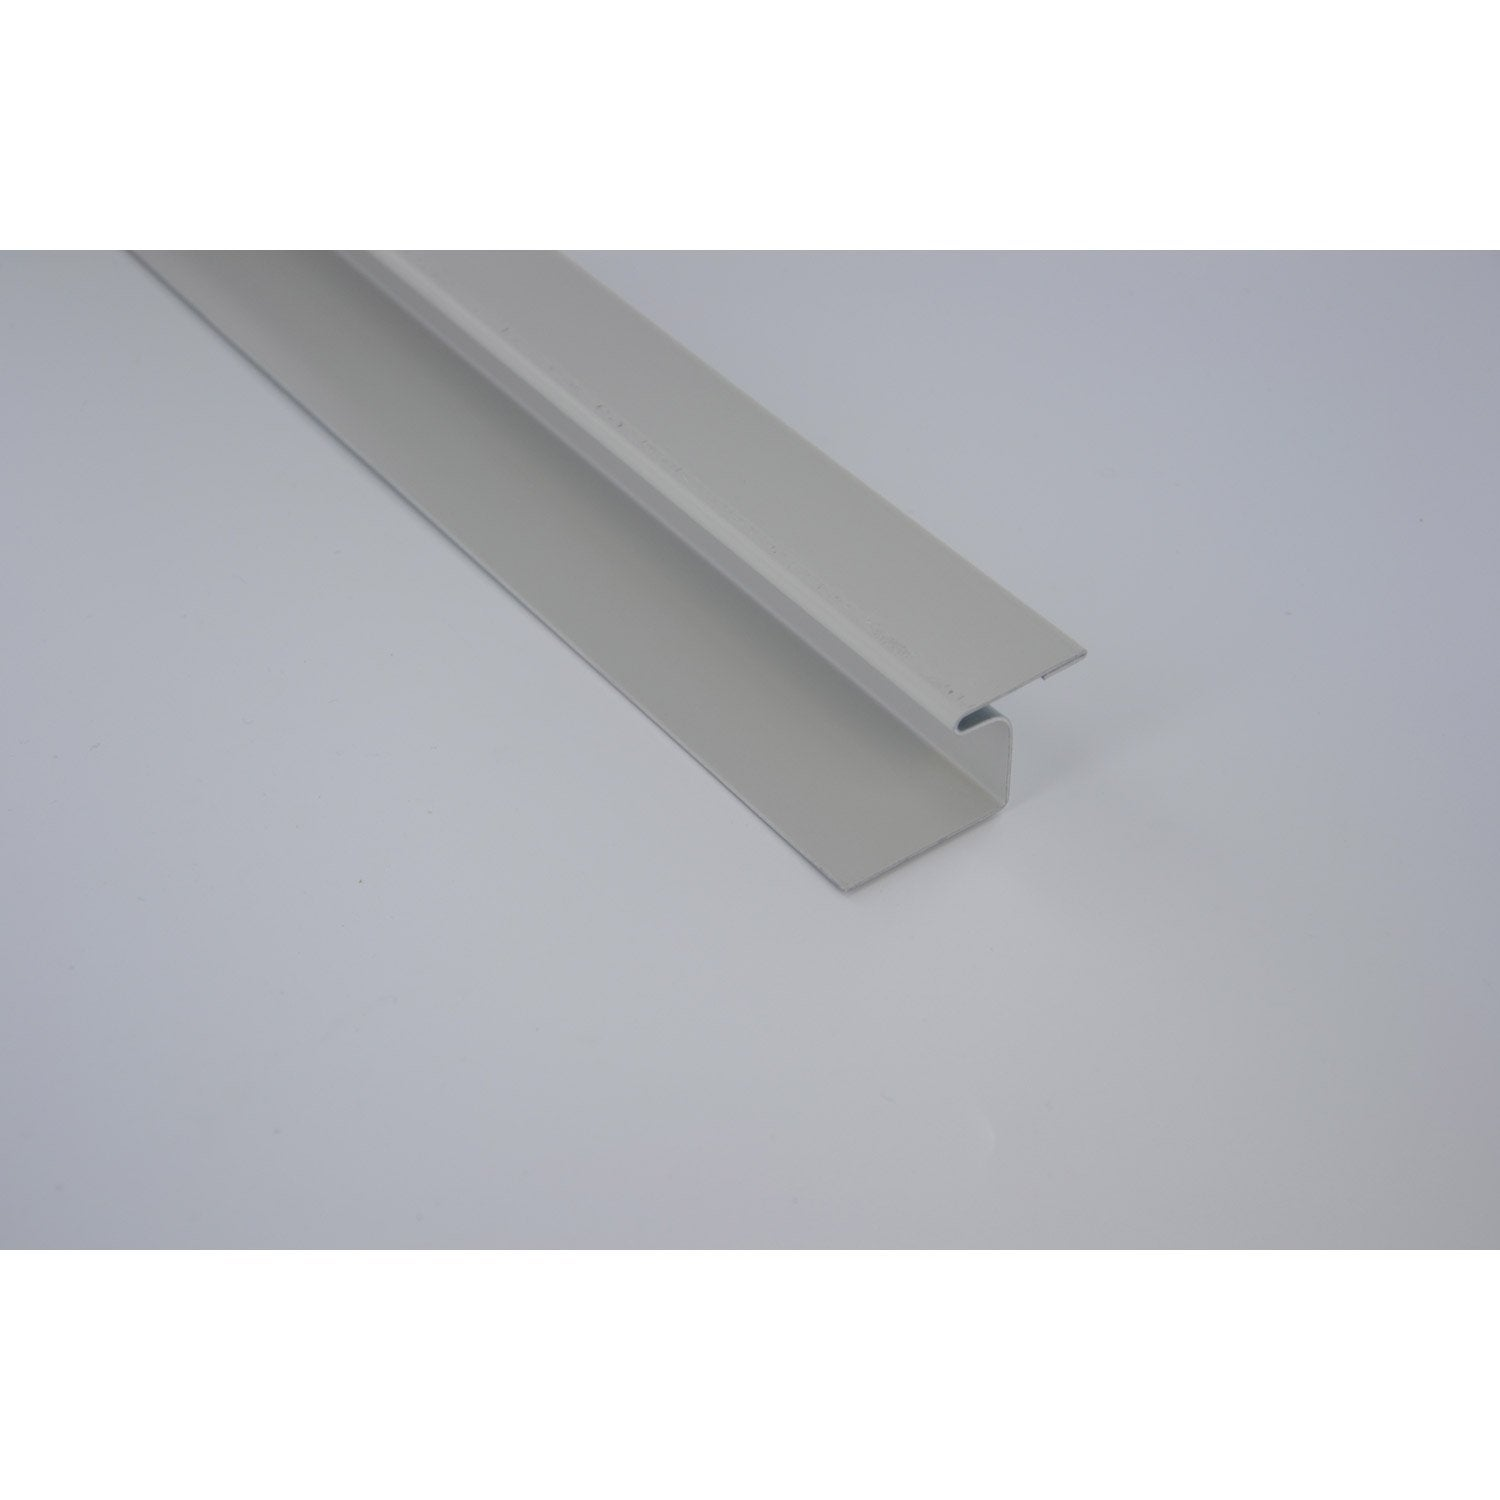 Joint de dilatation aluminium 27 x 55 scover plus gris l 2 - Joint de fractionnement ...